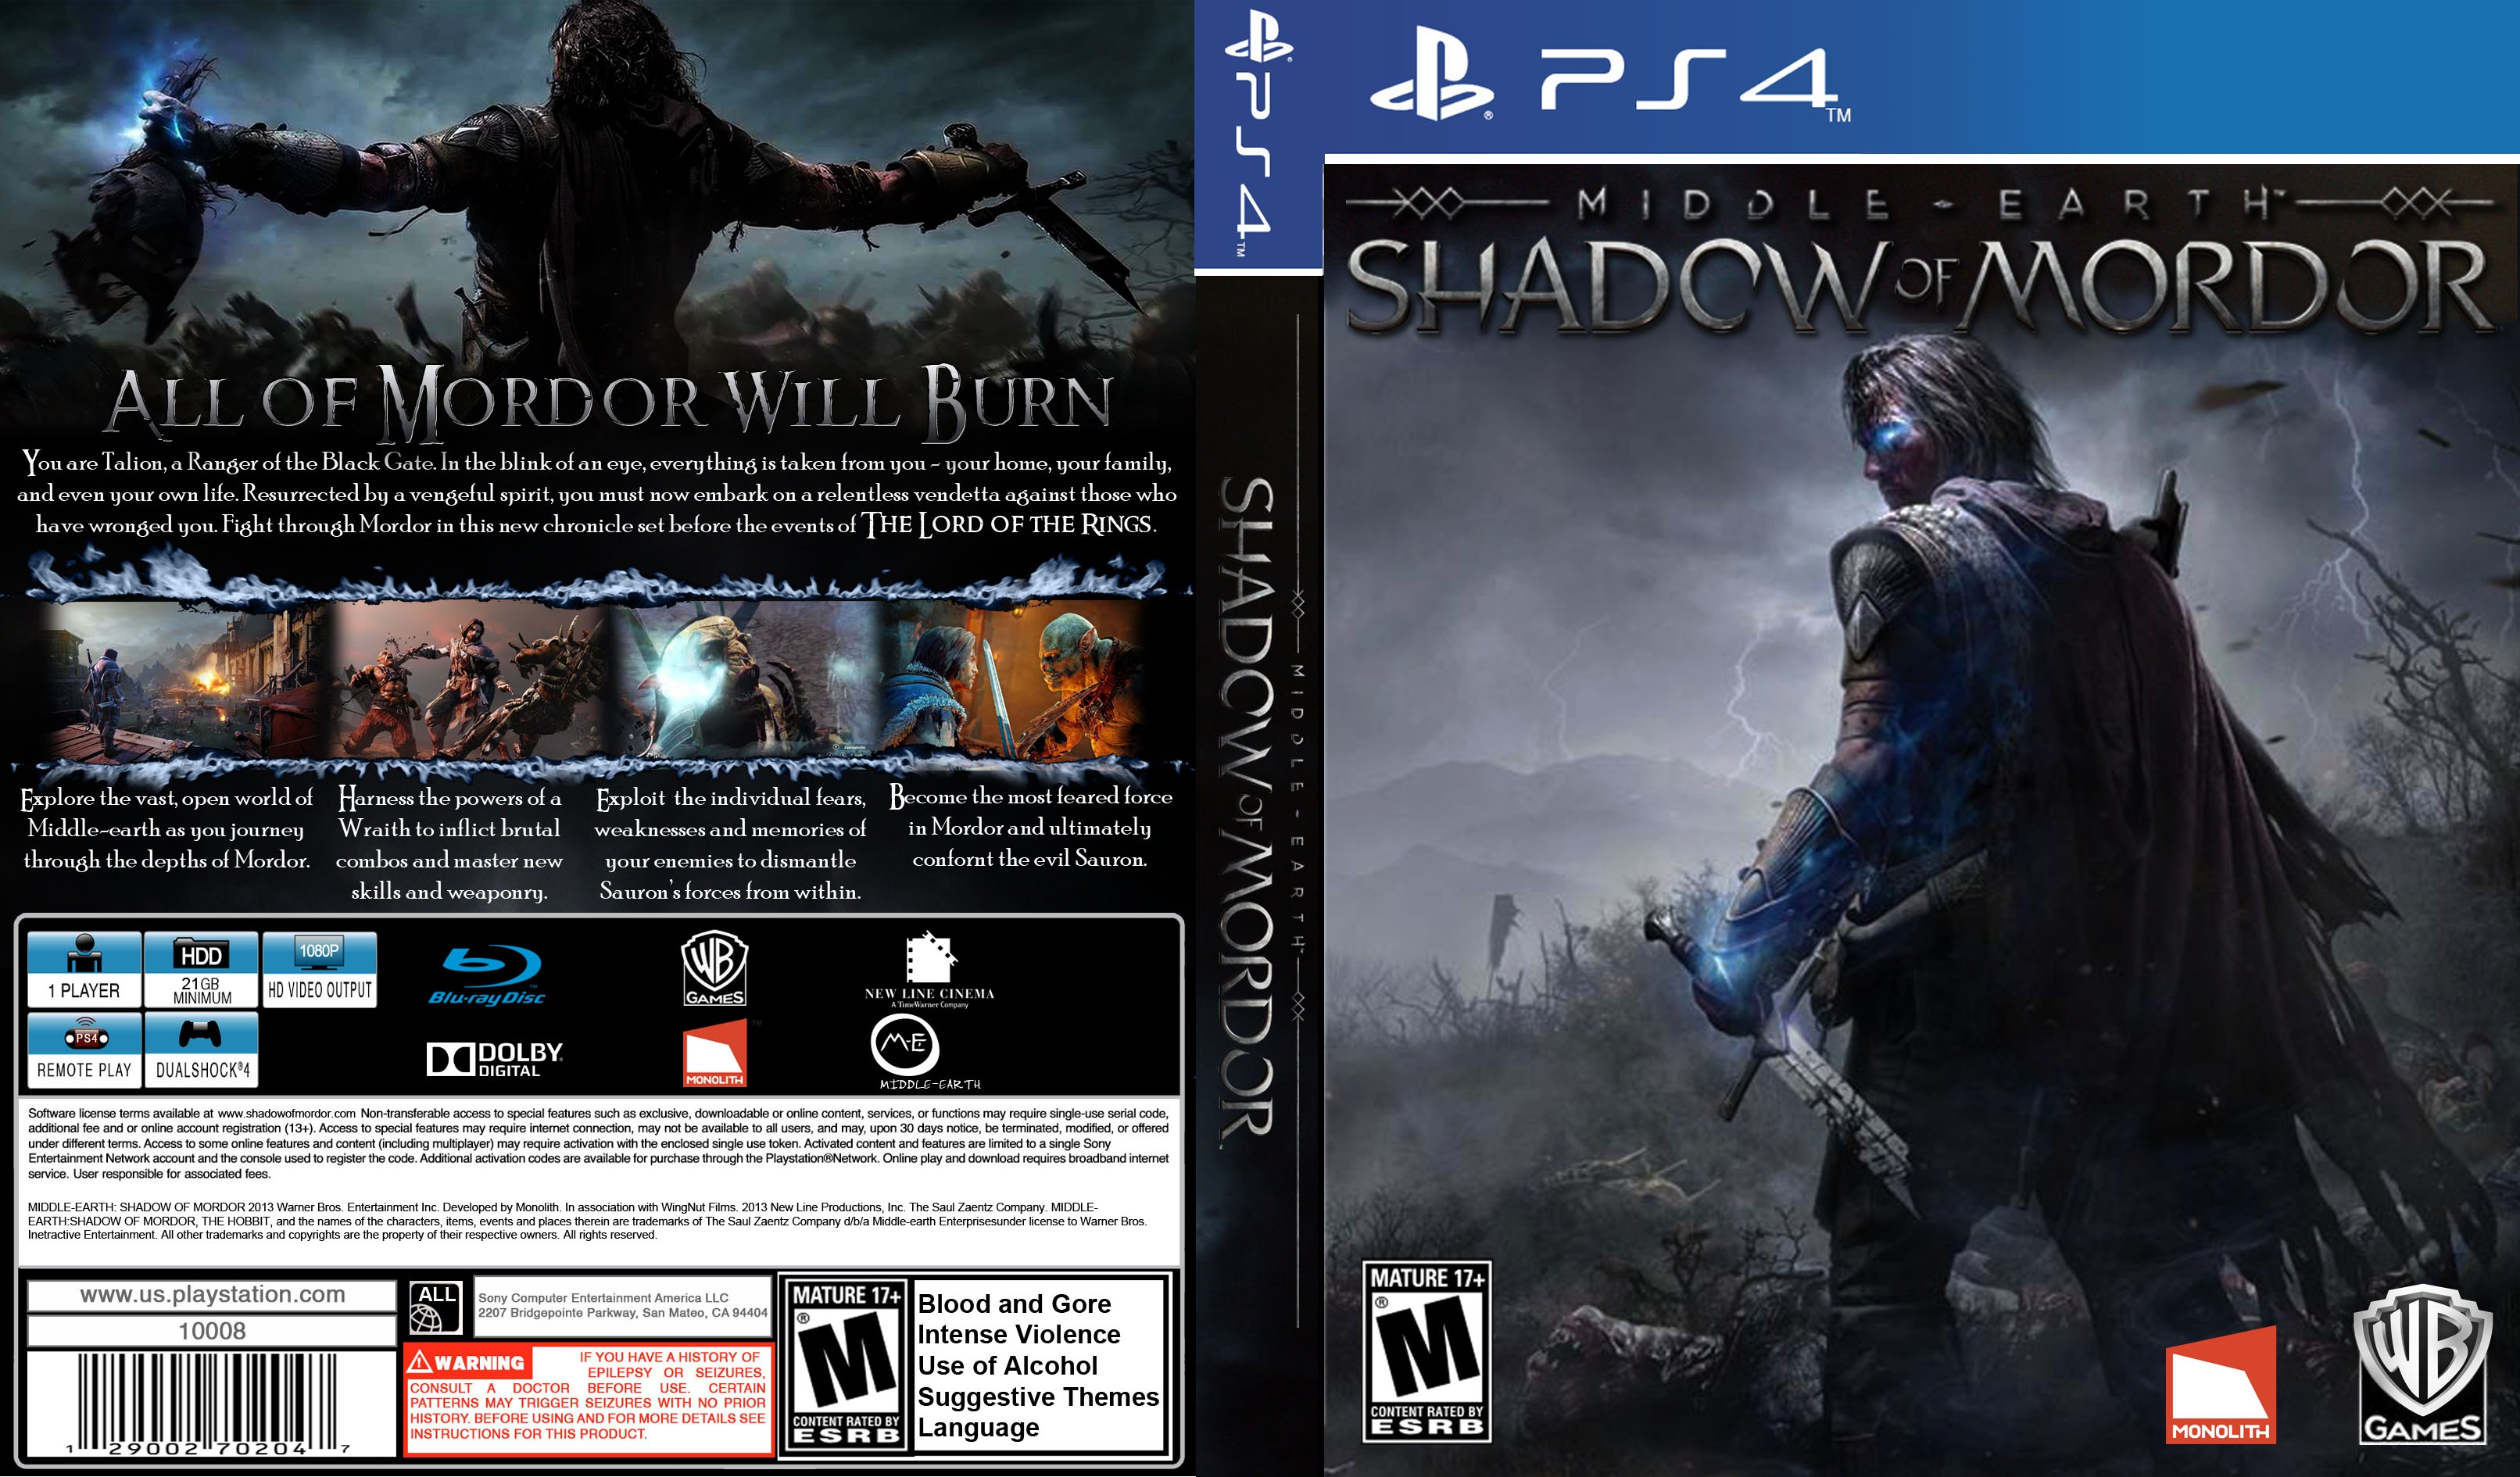 Middle-earth: Shadow of Mordor PlayStation 4 Box Art Cover ...